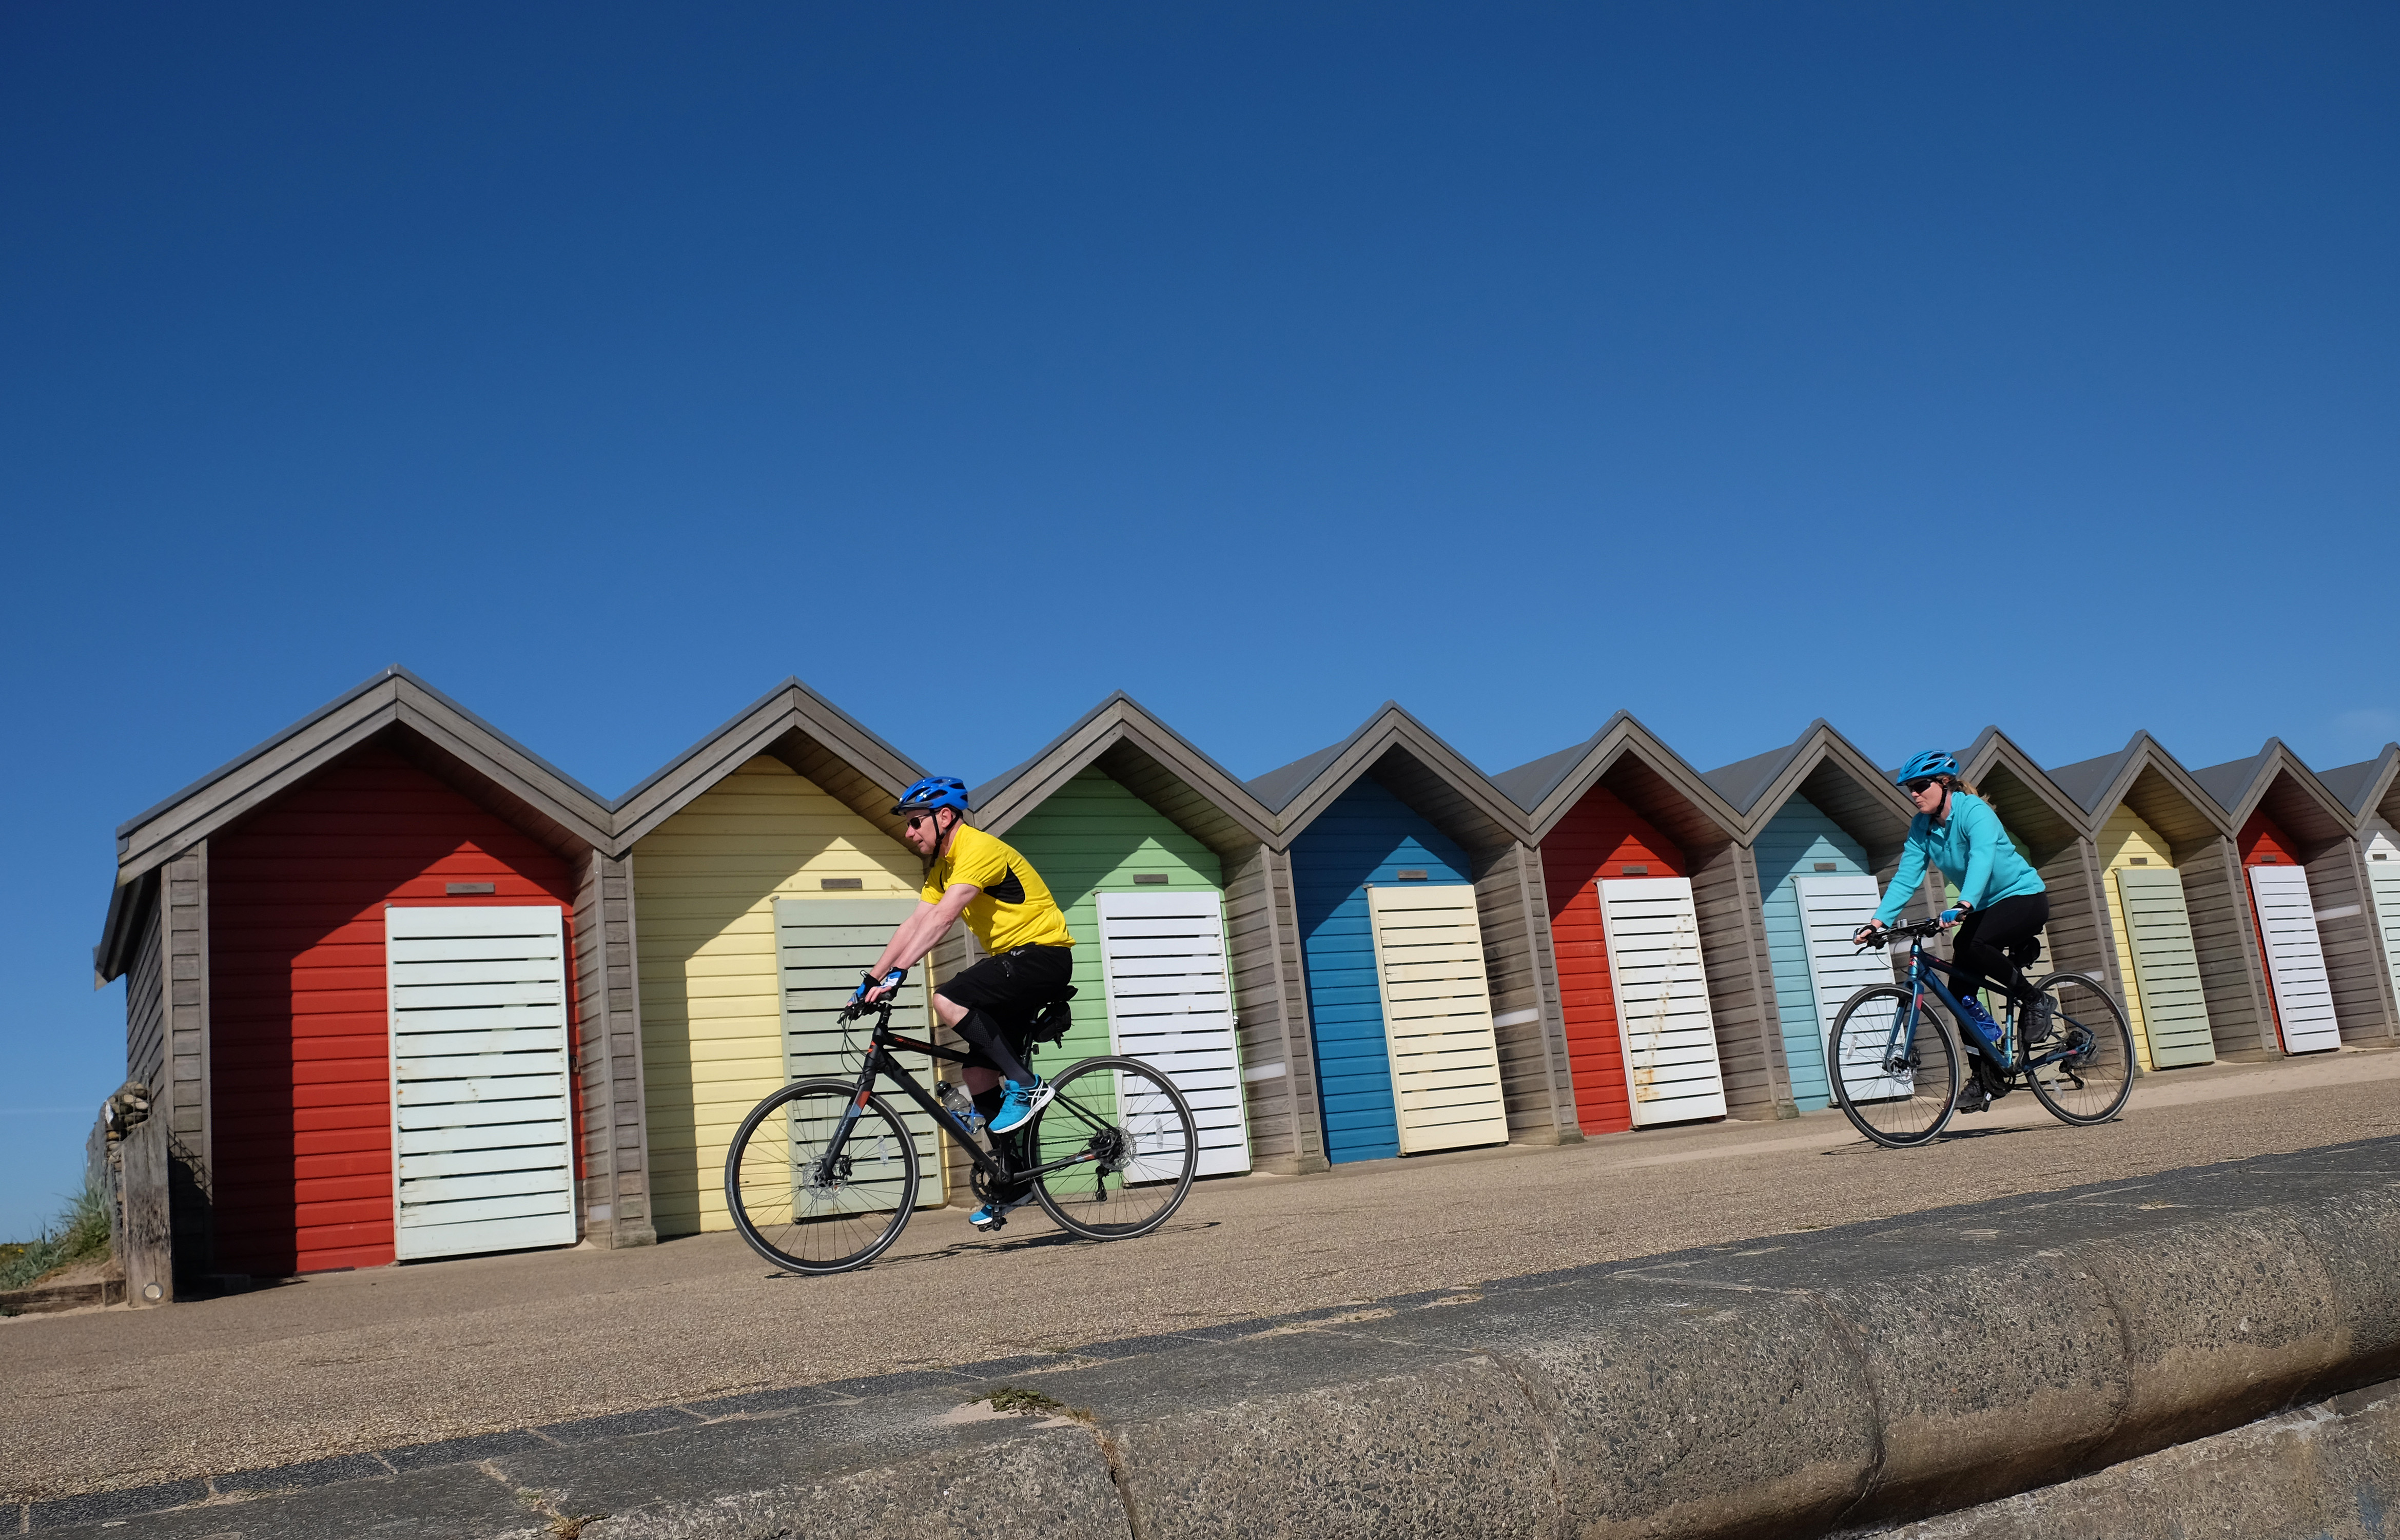 Cyclists ride under a clear blue sky in Blyth, Northumberland, as highs of 22C are now expected for some parts of the UK by the weekend.